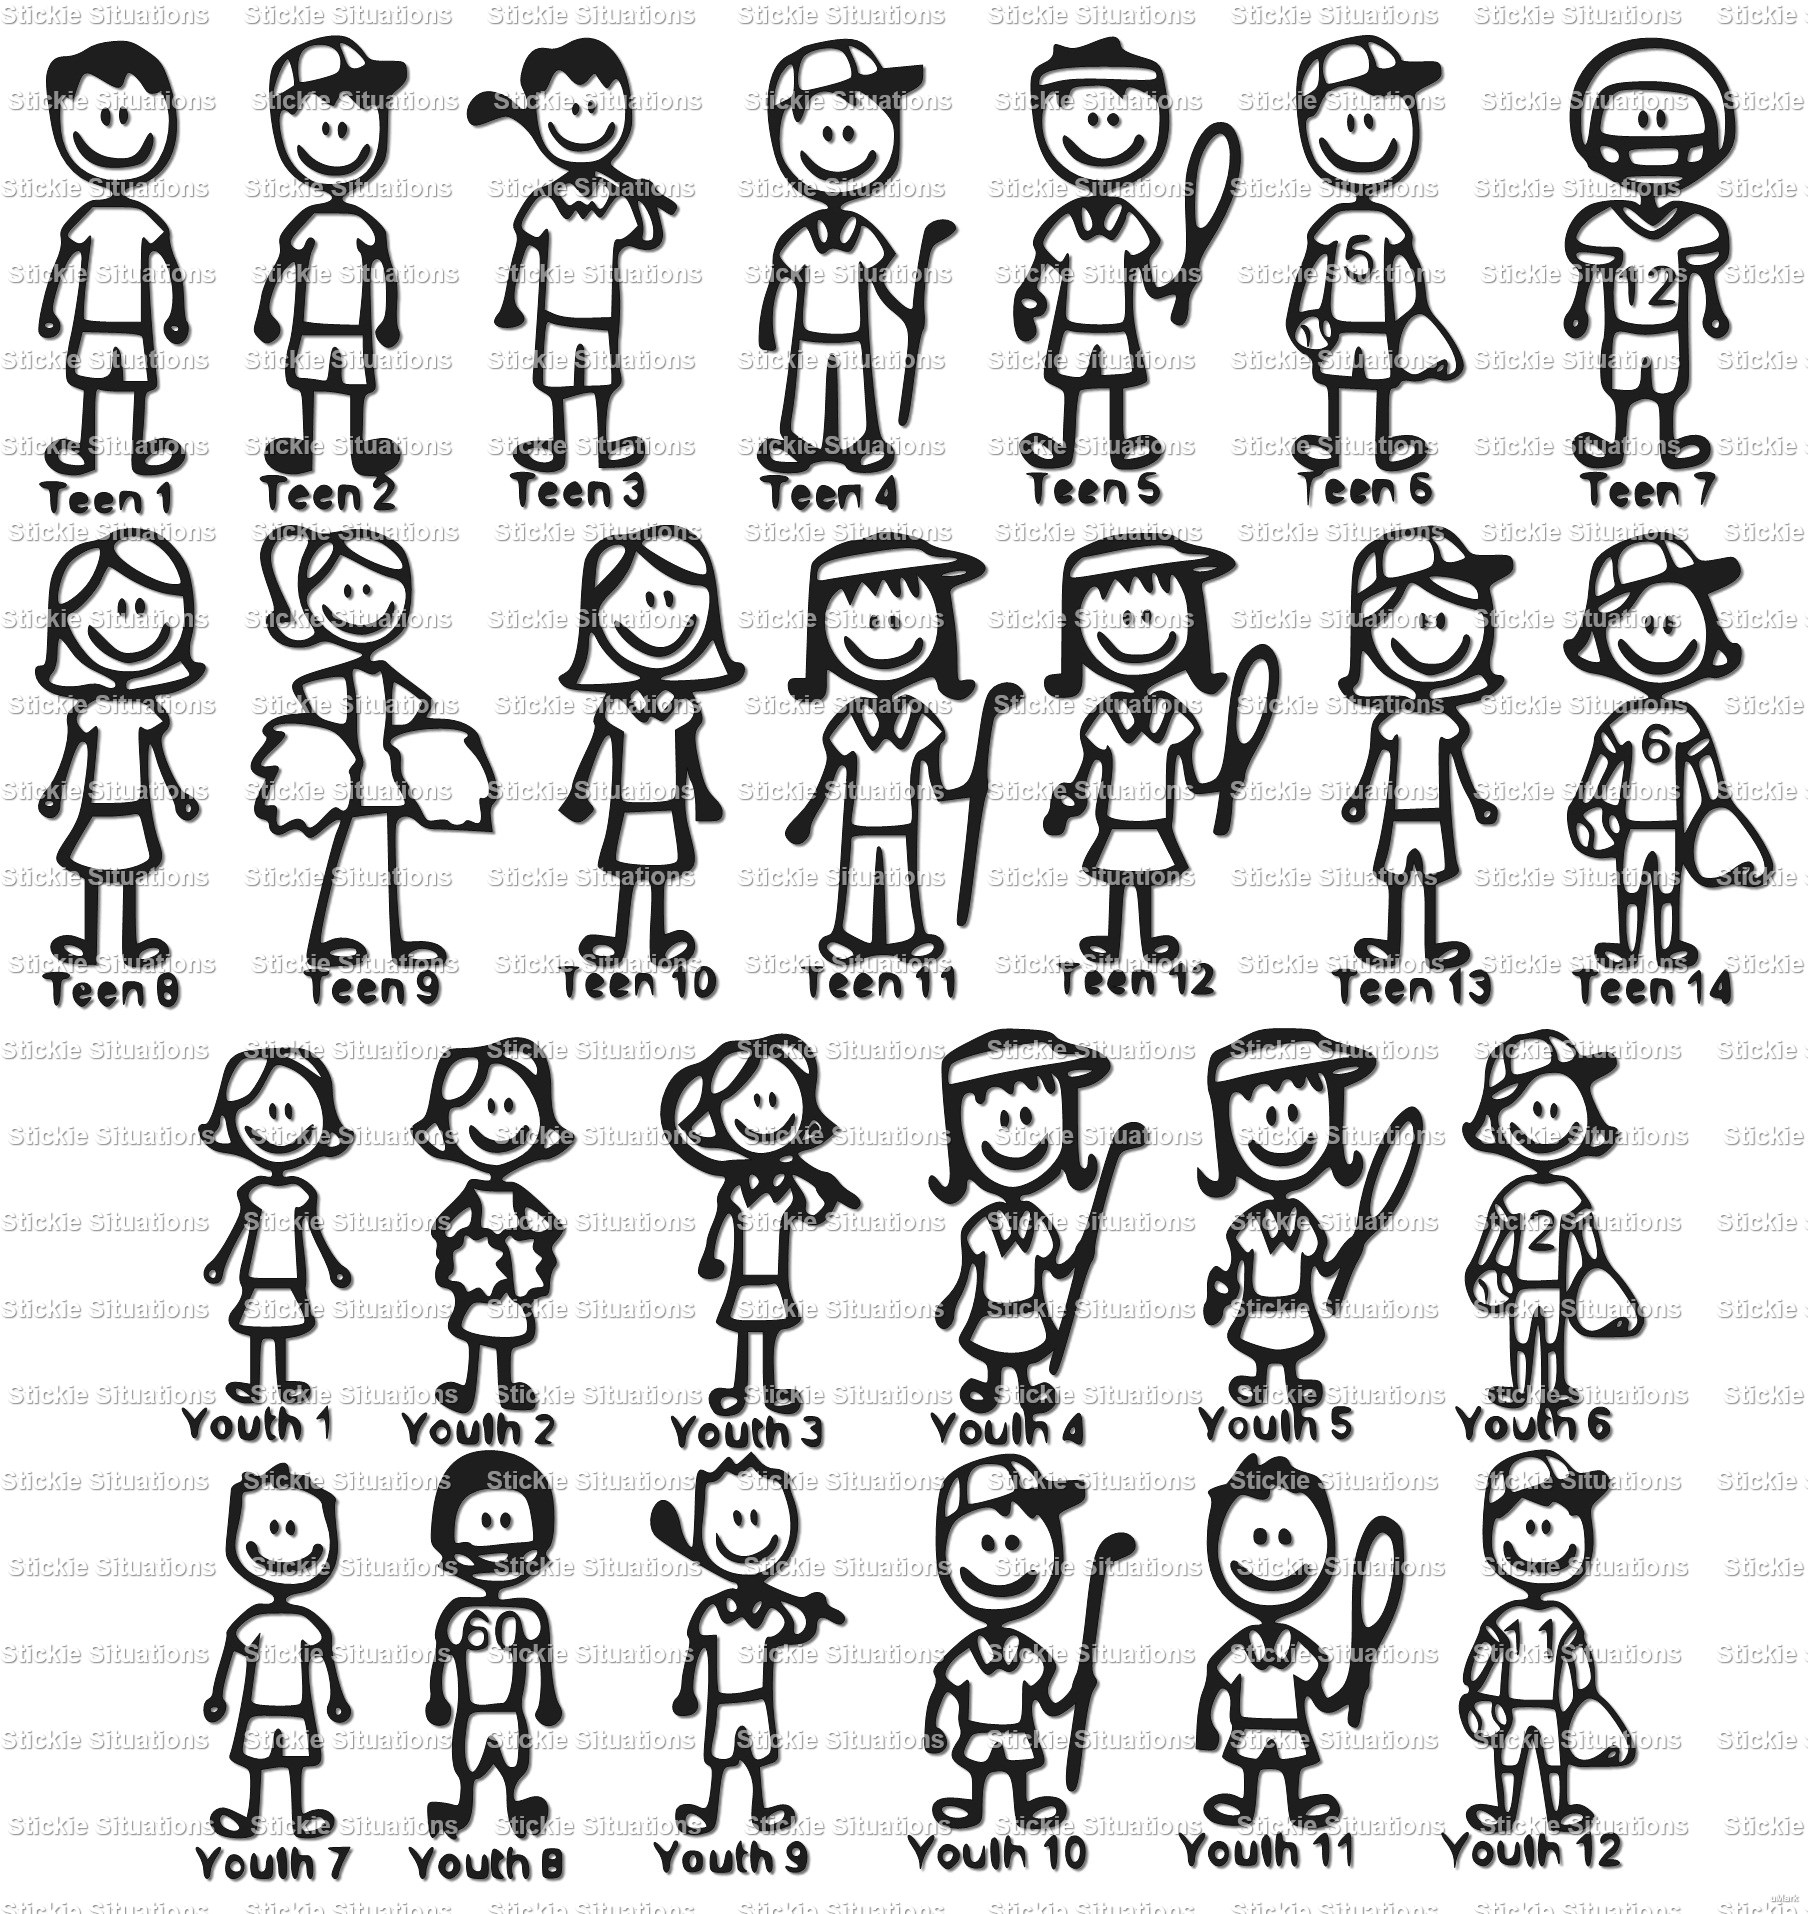 Stick Family Car Decal  Stickie Situations  Online Store Powered - Family car sticker decals